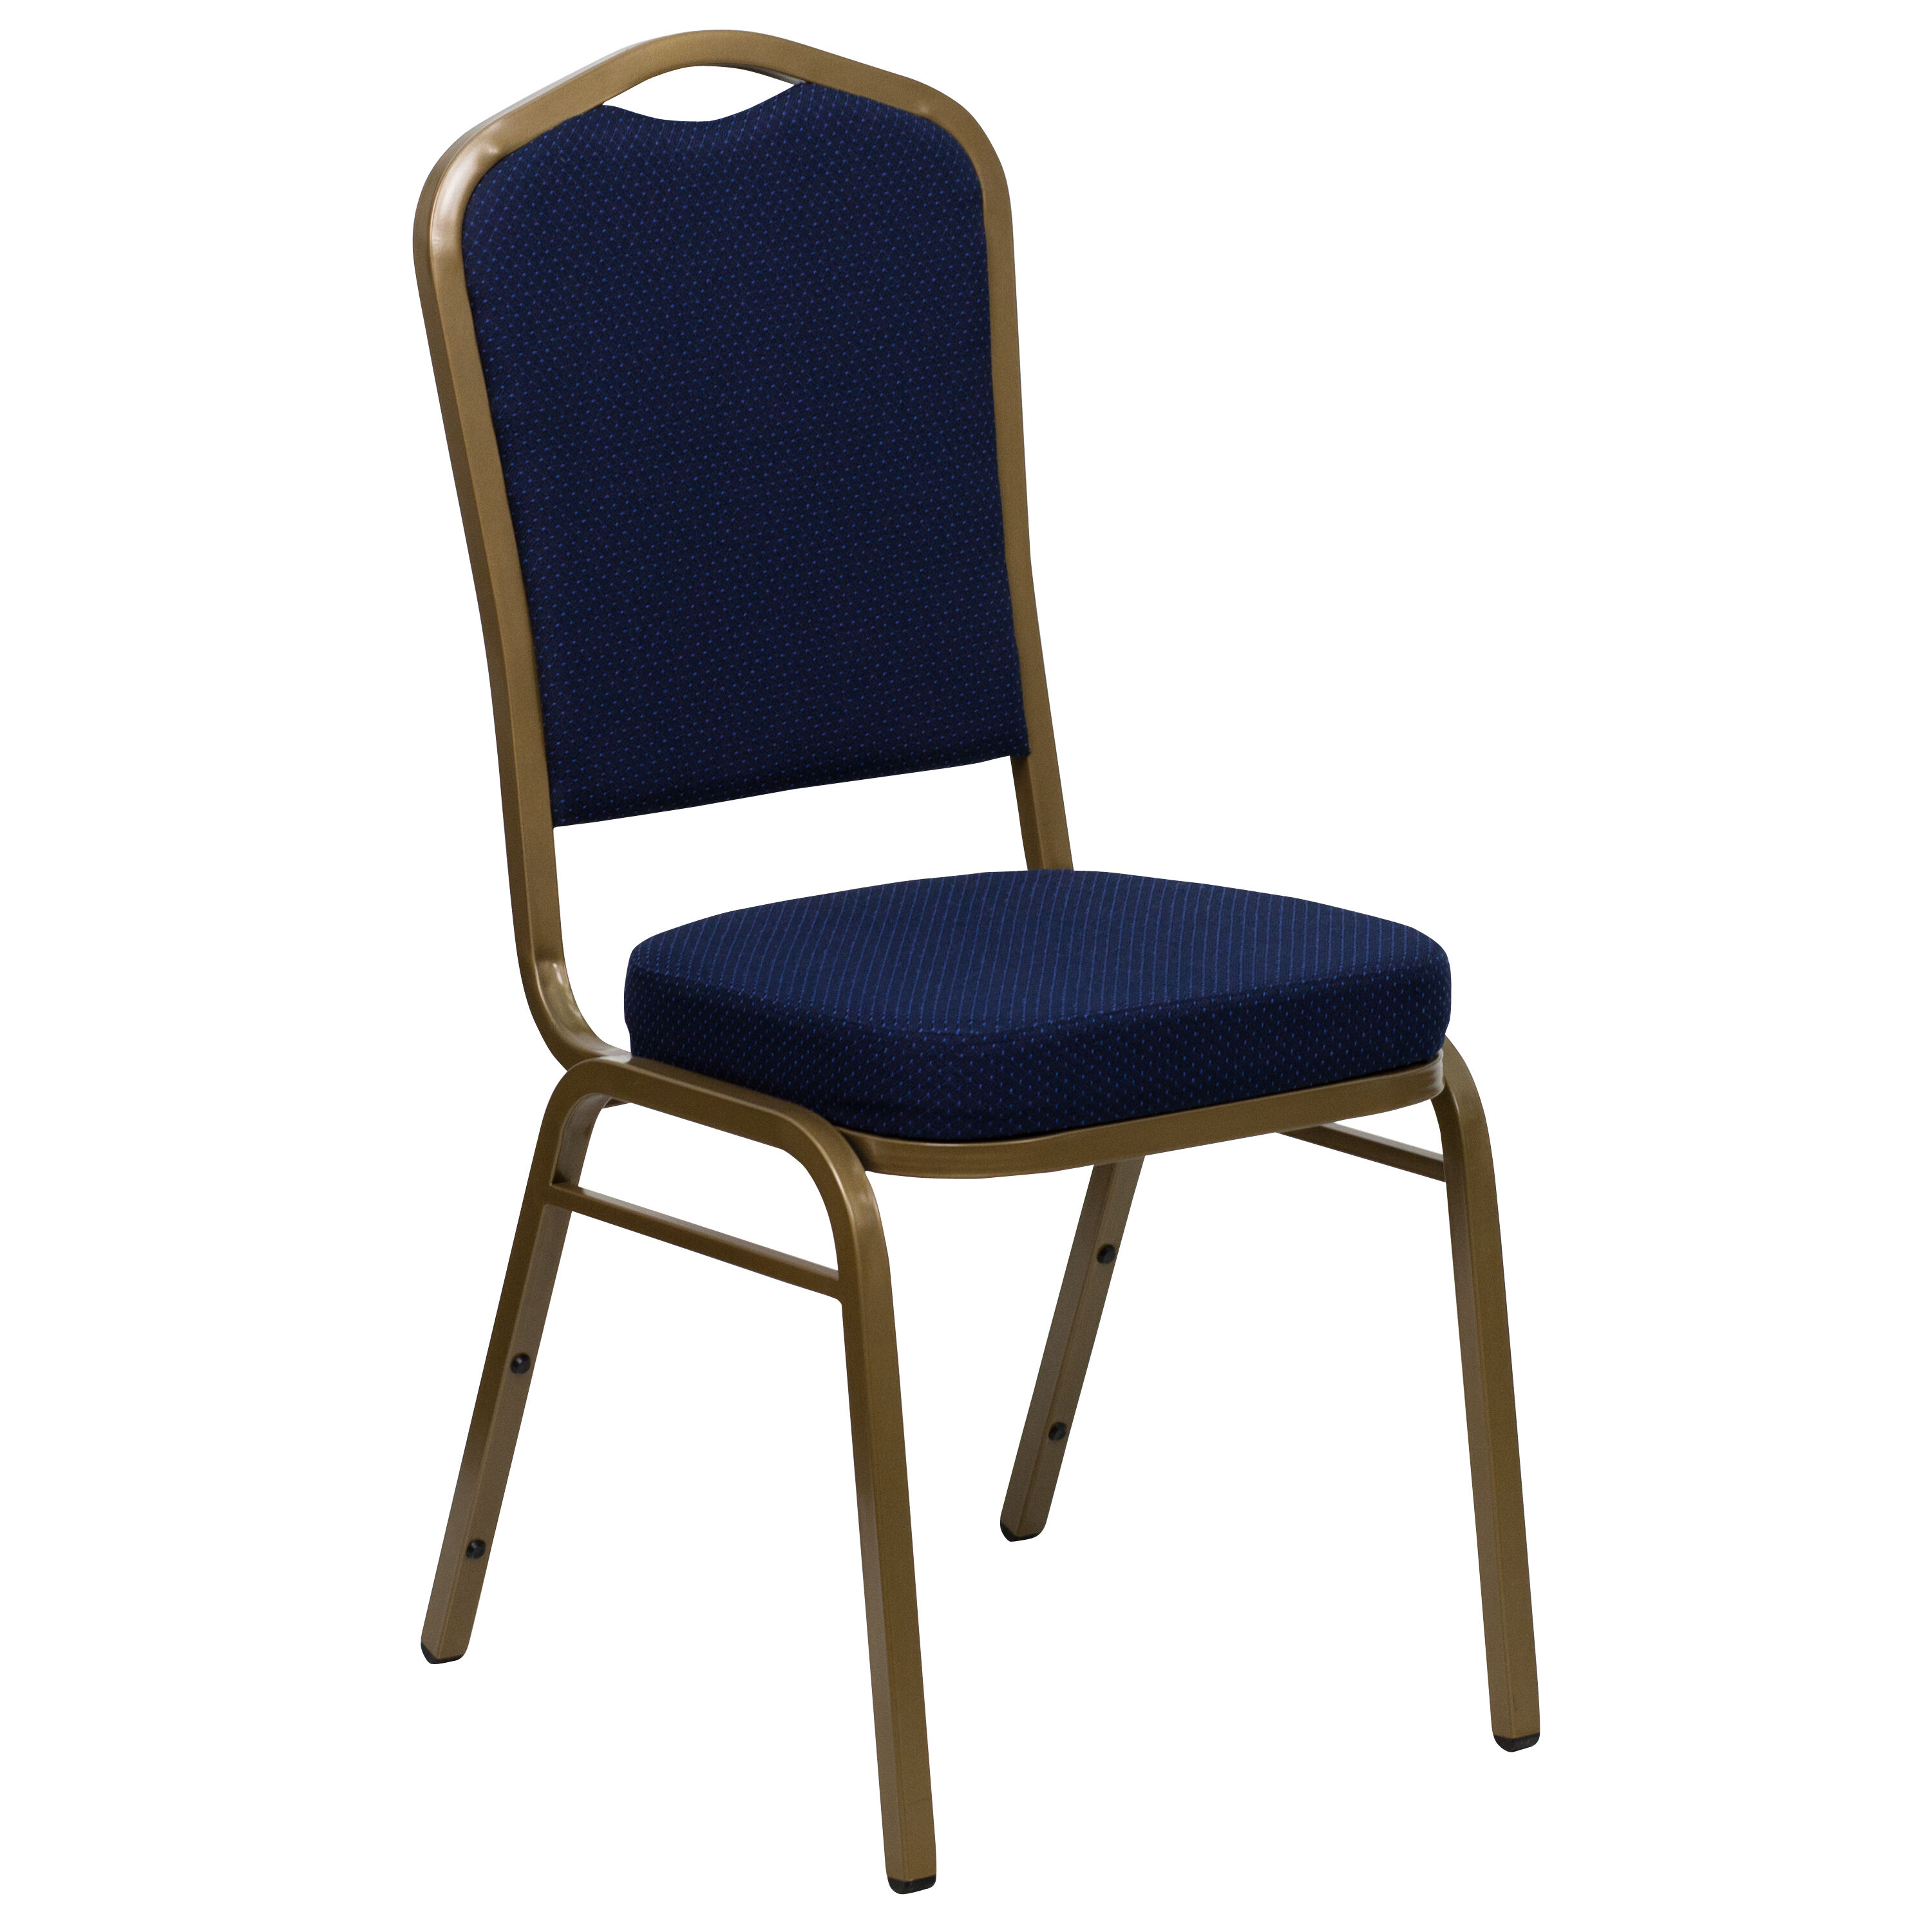 Hercules Series Crown Back Stacking Banquet Chair In Navy Blue Patterned Fabric Gold Frame